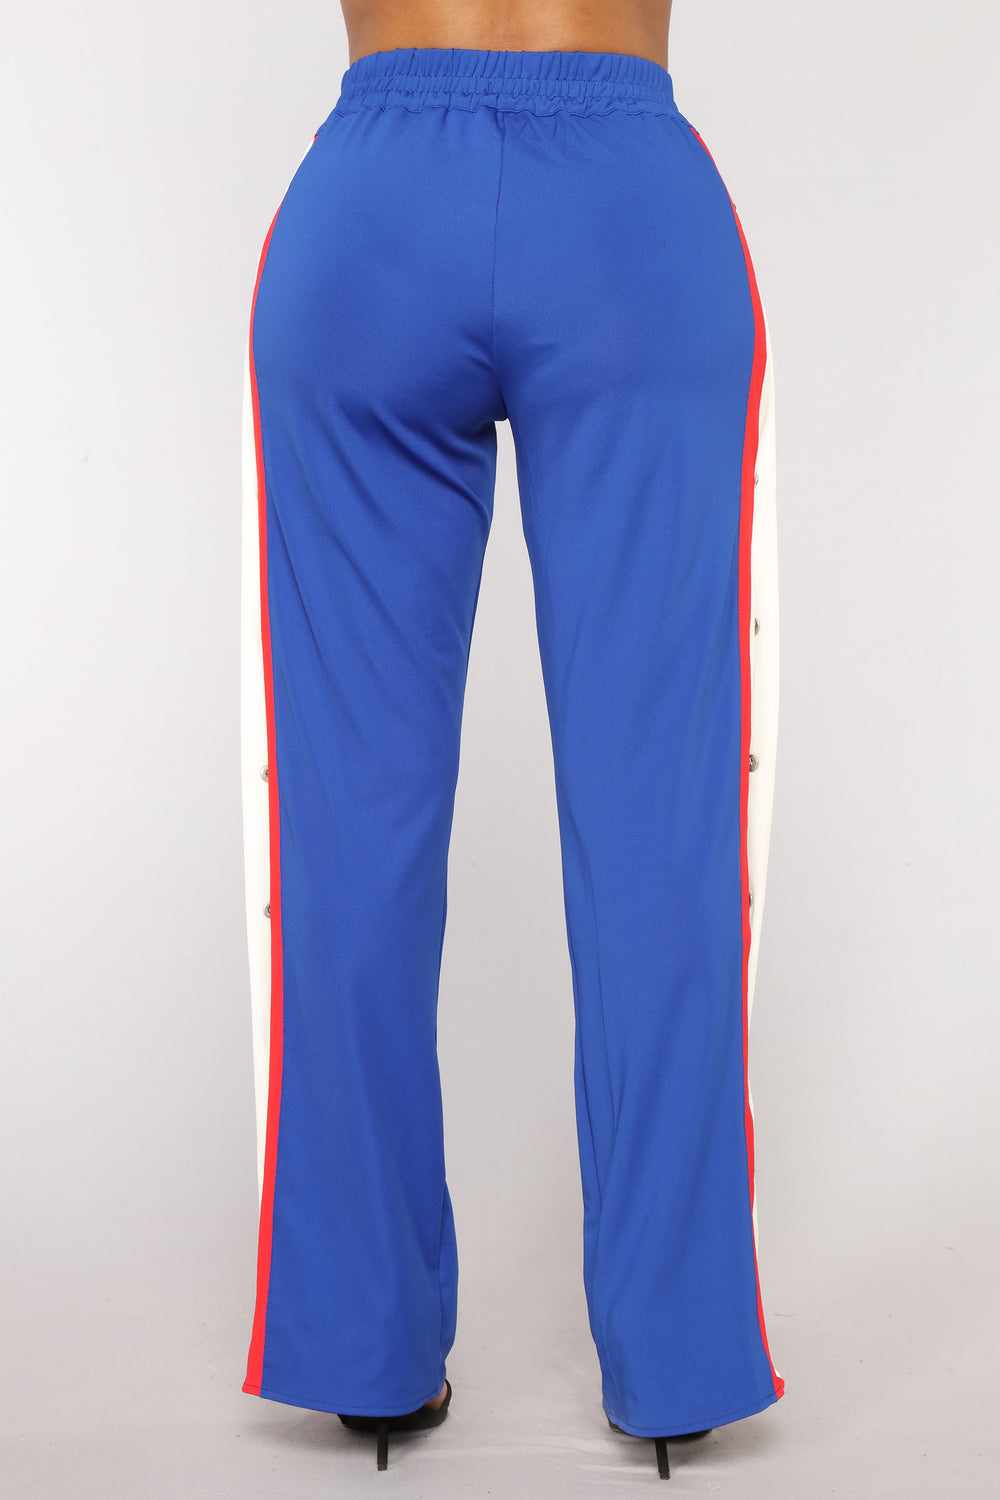 Big Baller Snap Pants - Blue